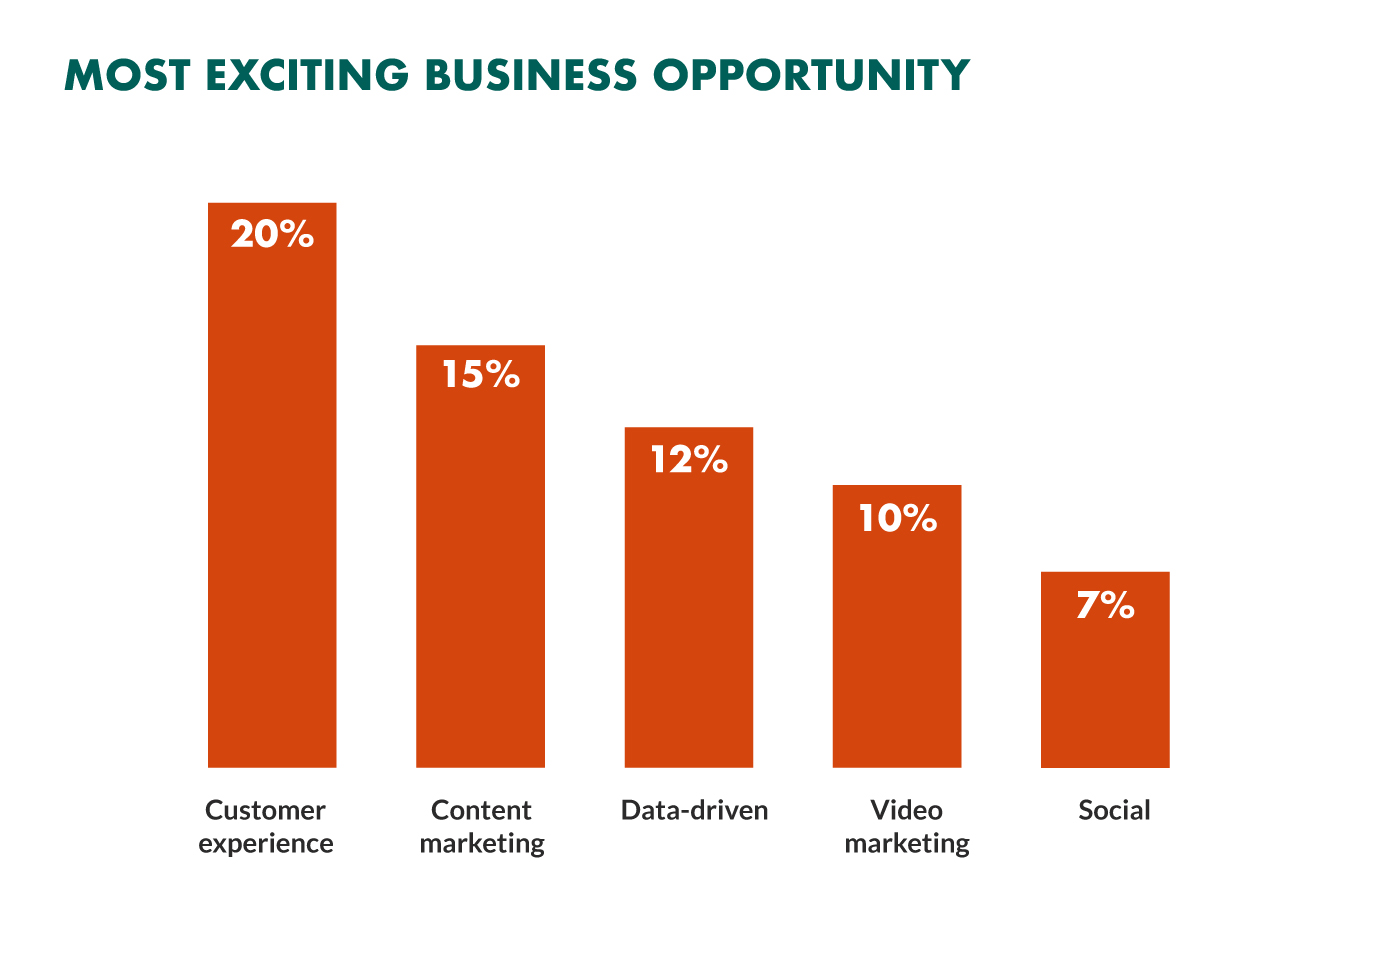 customer experience most exciting business opportunity